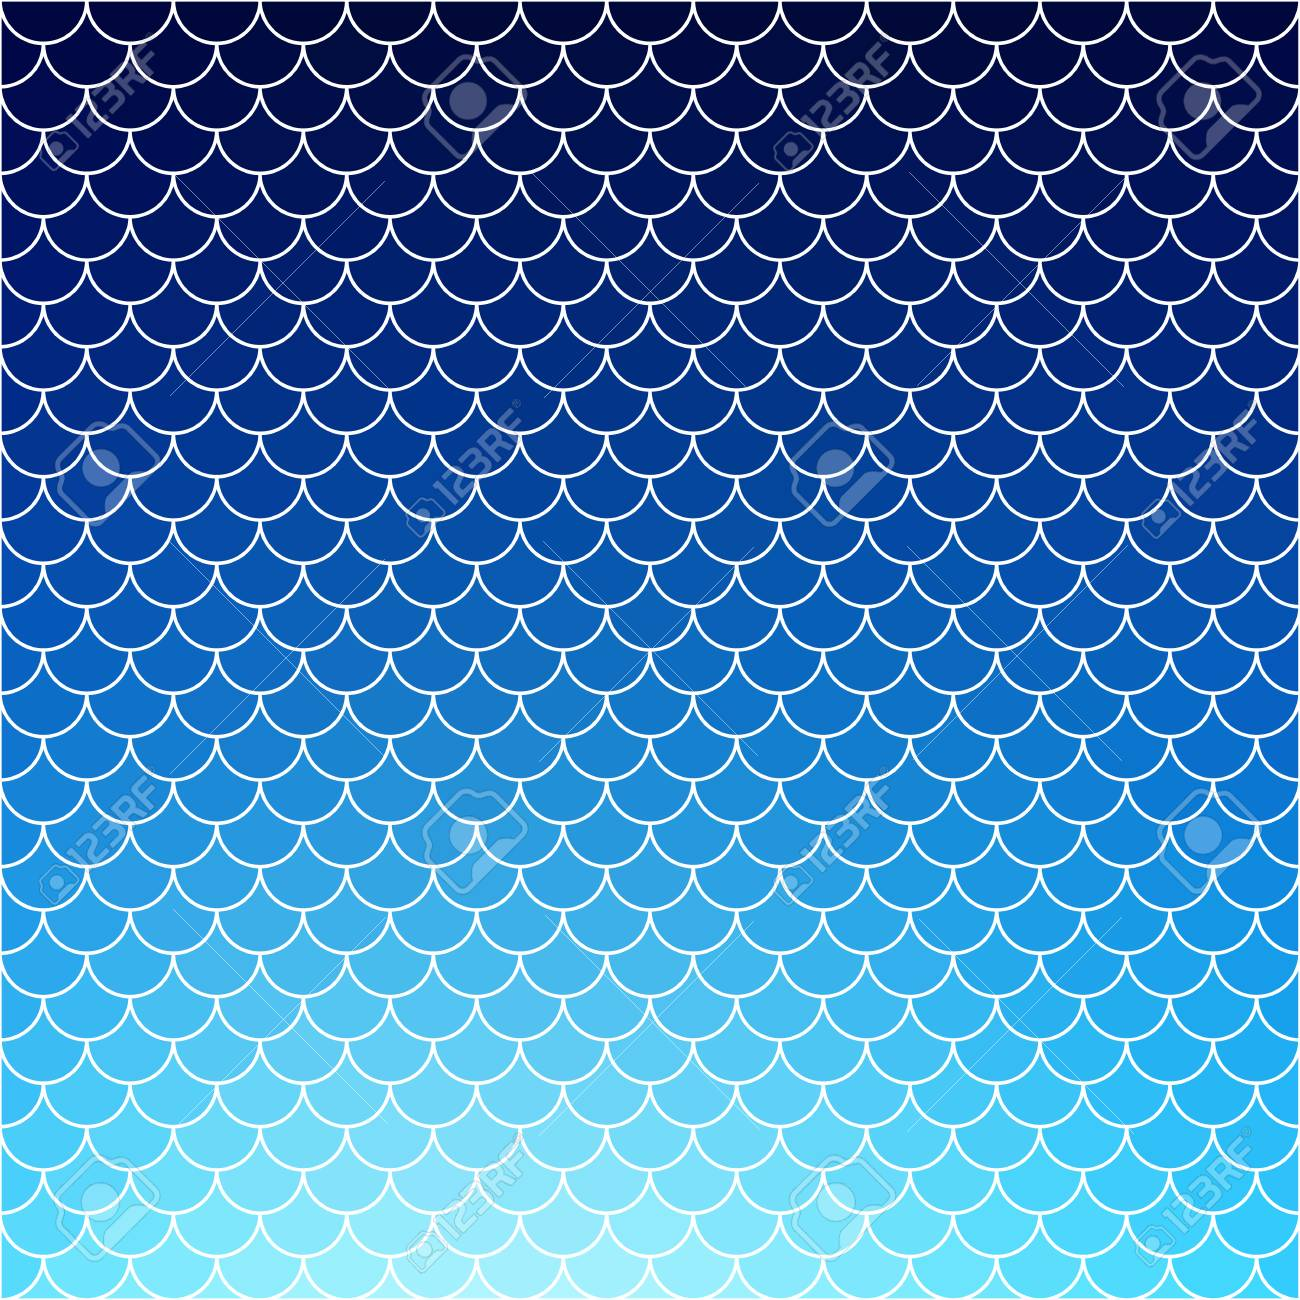 Blue Roof Tiles Pattern, Creative Design Templates Royalty Free ...